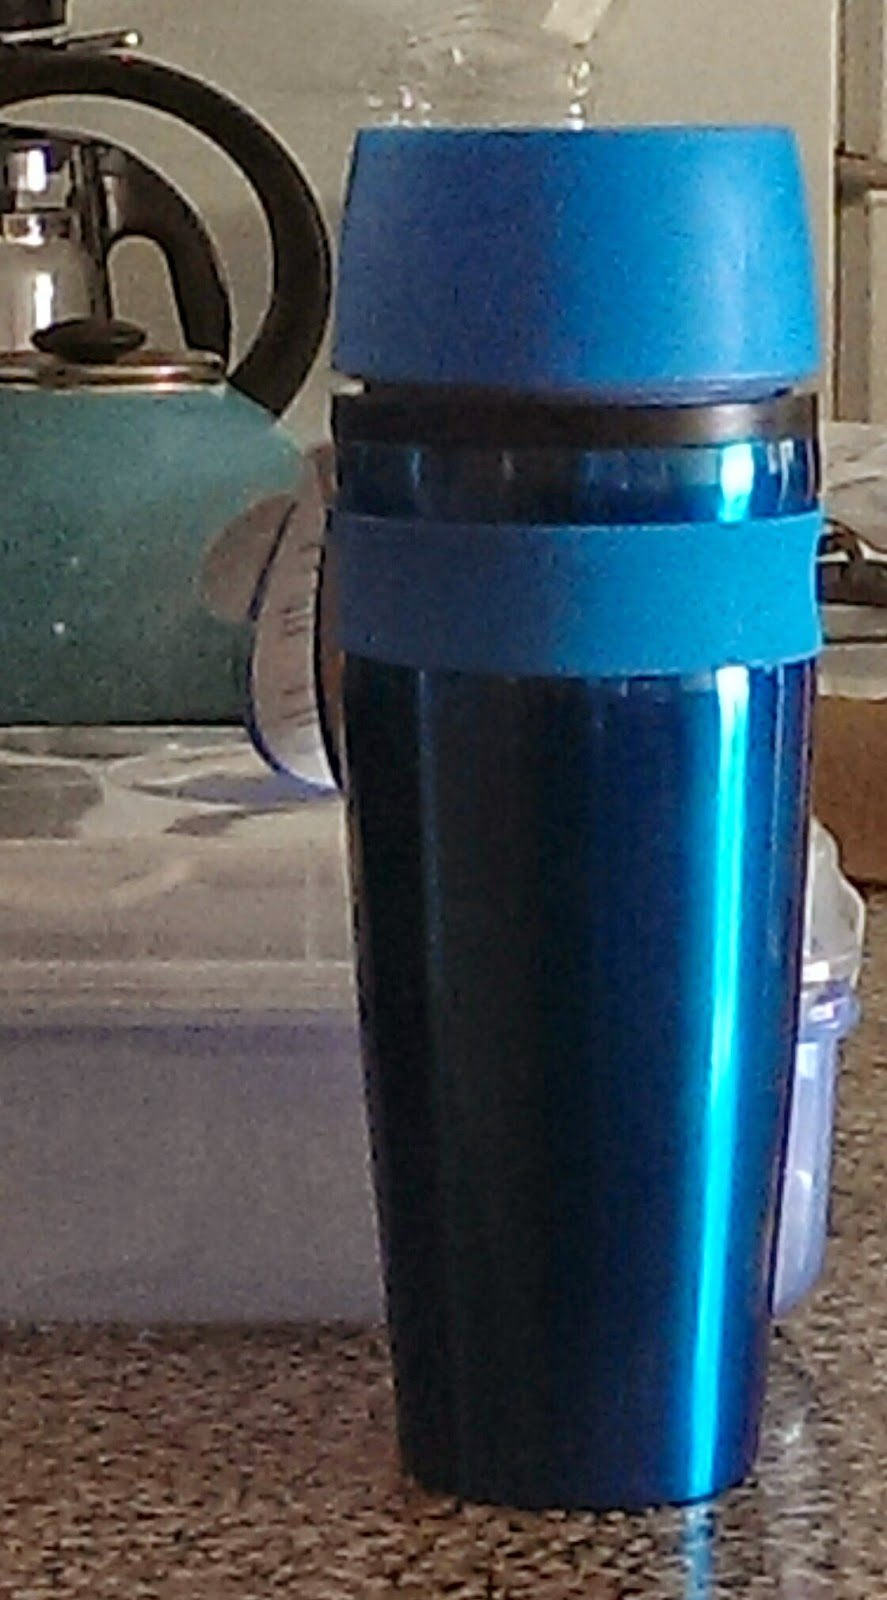 Rove%2BInfuser%2BTumbler ROVE: New Eco-Friendly Products Review